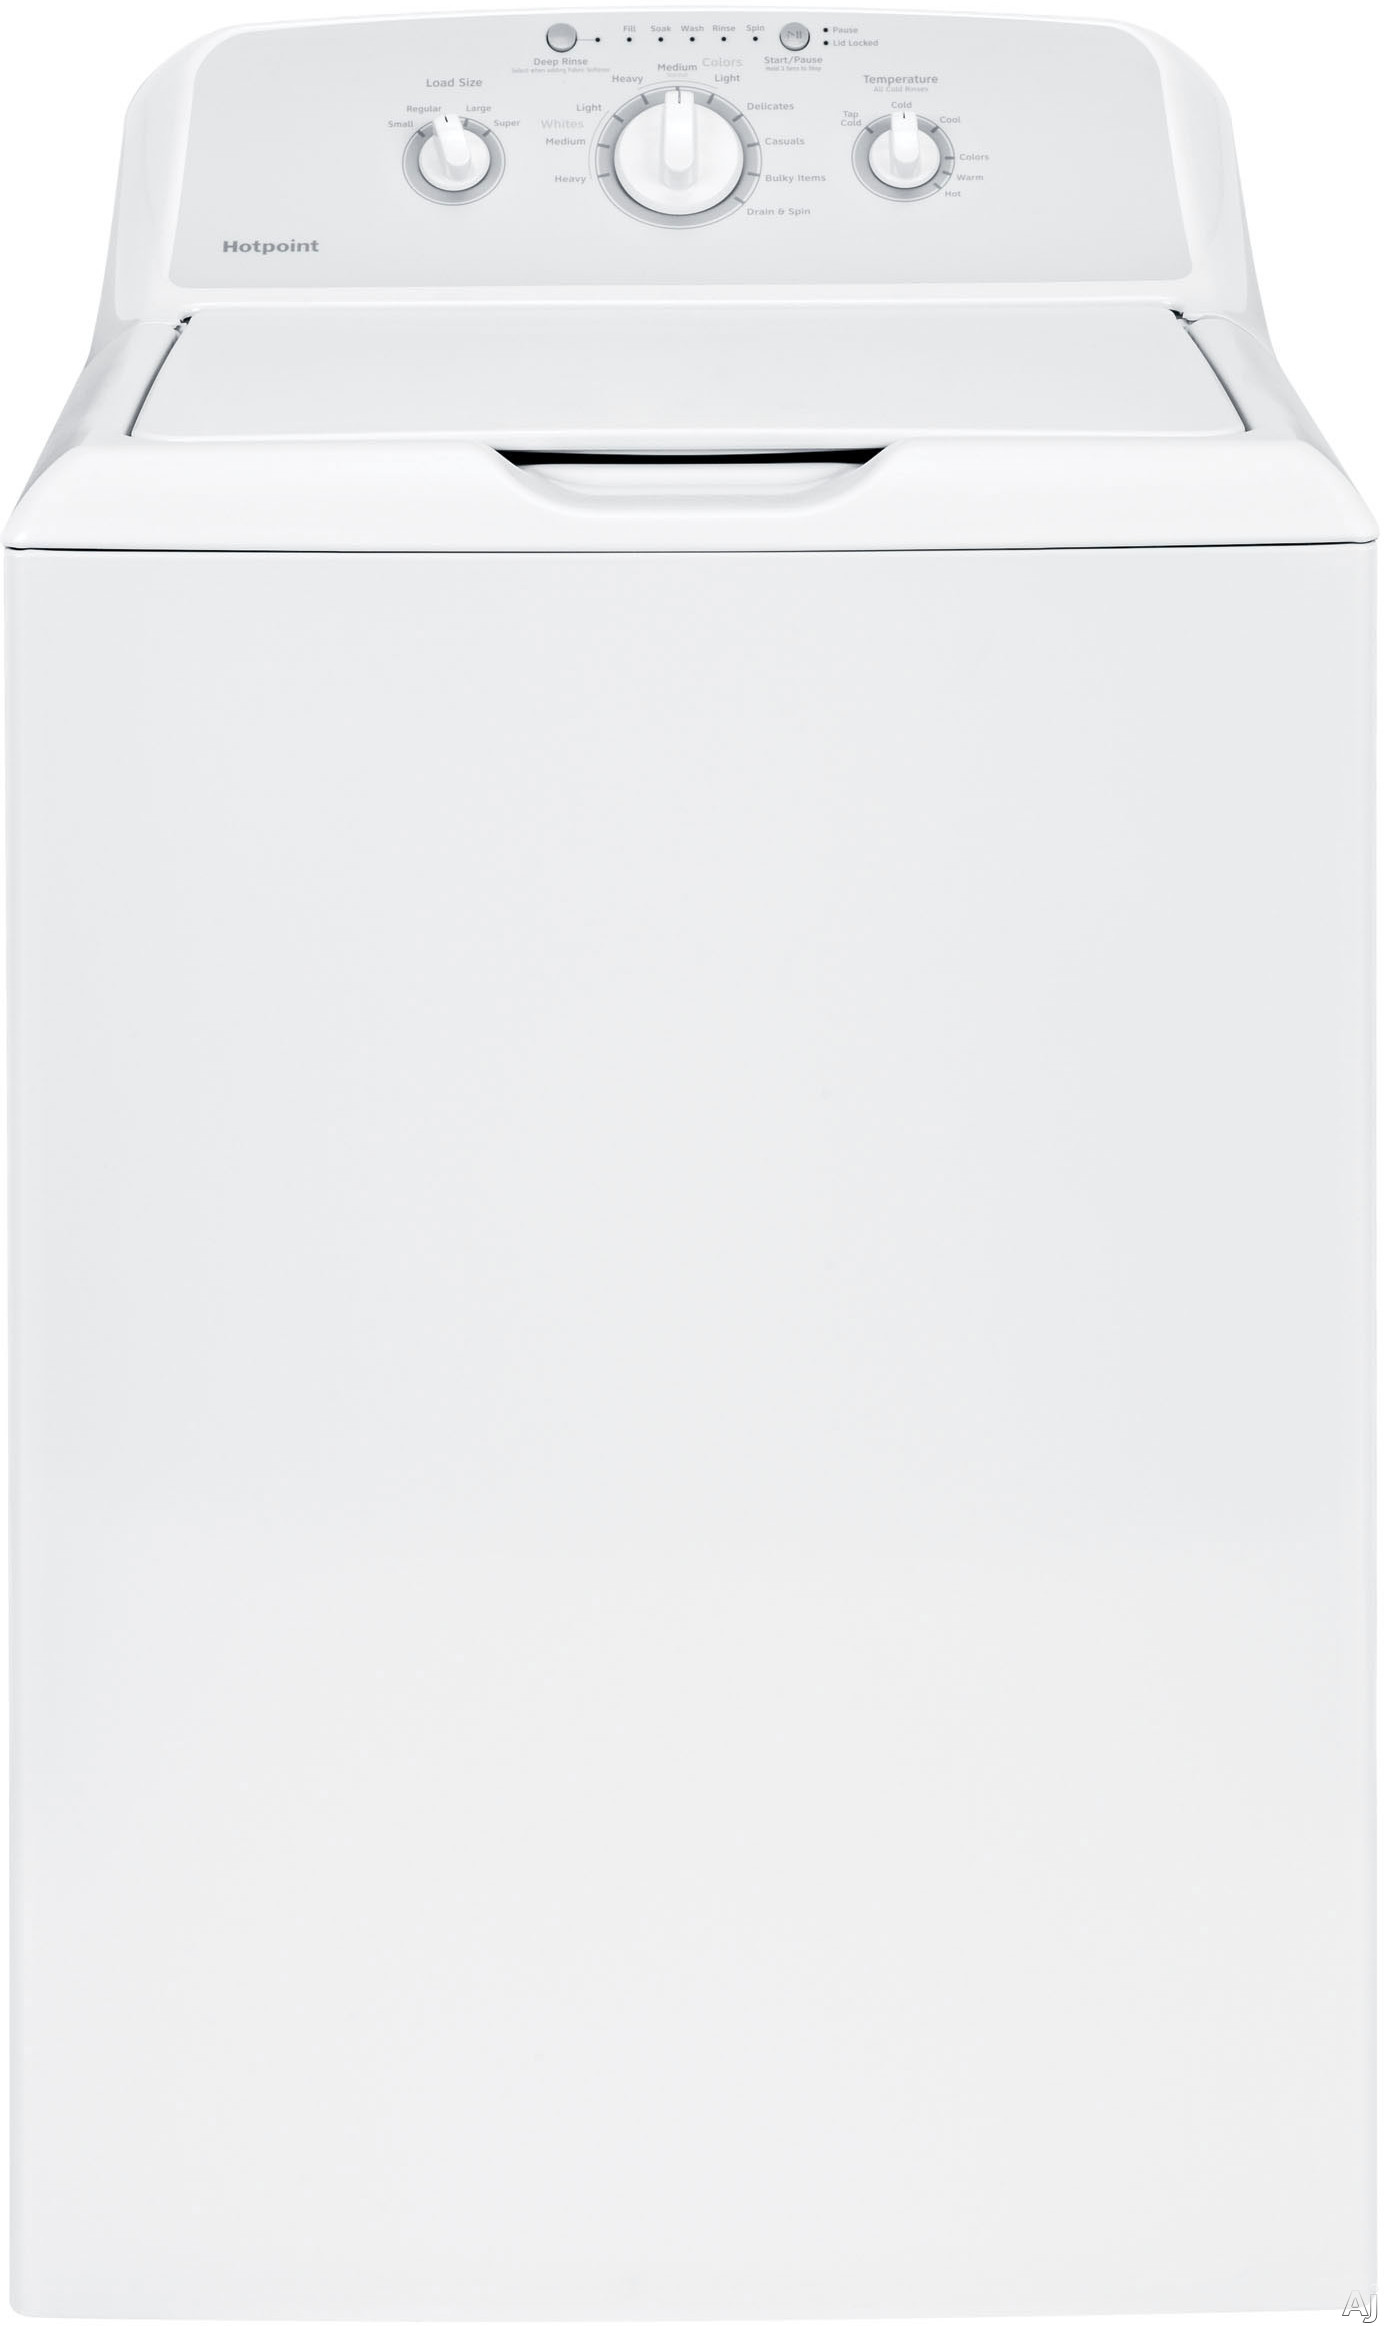 Hotpoint HTW240ASKWS 27 Inch Top Load Washer with 3.6 cu. ft. Capacity, 10 Wash Cycles, 700 RPM Spin Speed, Heavy-Duty Agitator, Stainless Steel Wash Drum, Deep Rinse Option, Bleach and Fabric Softener Dispensers and Cycle Status Lights HTW240ASKWS